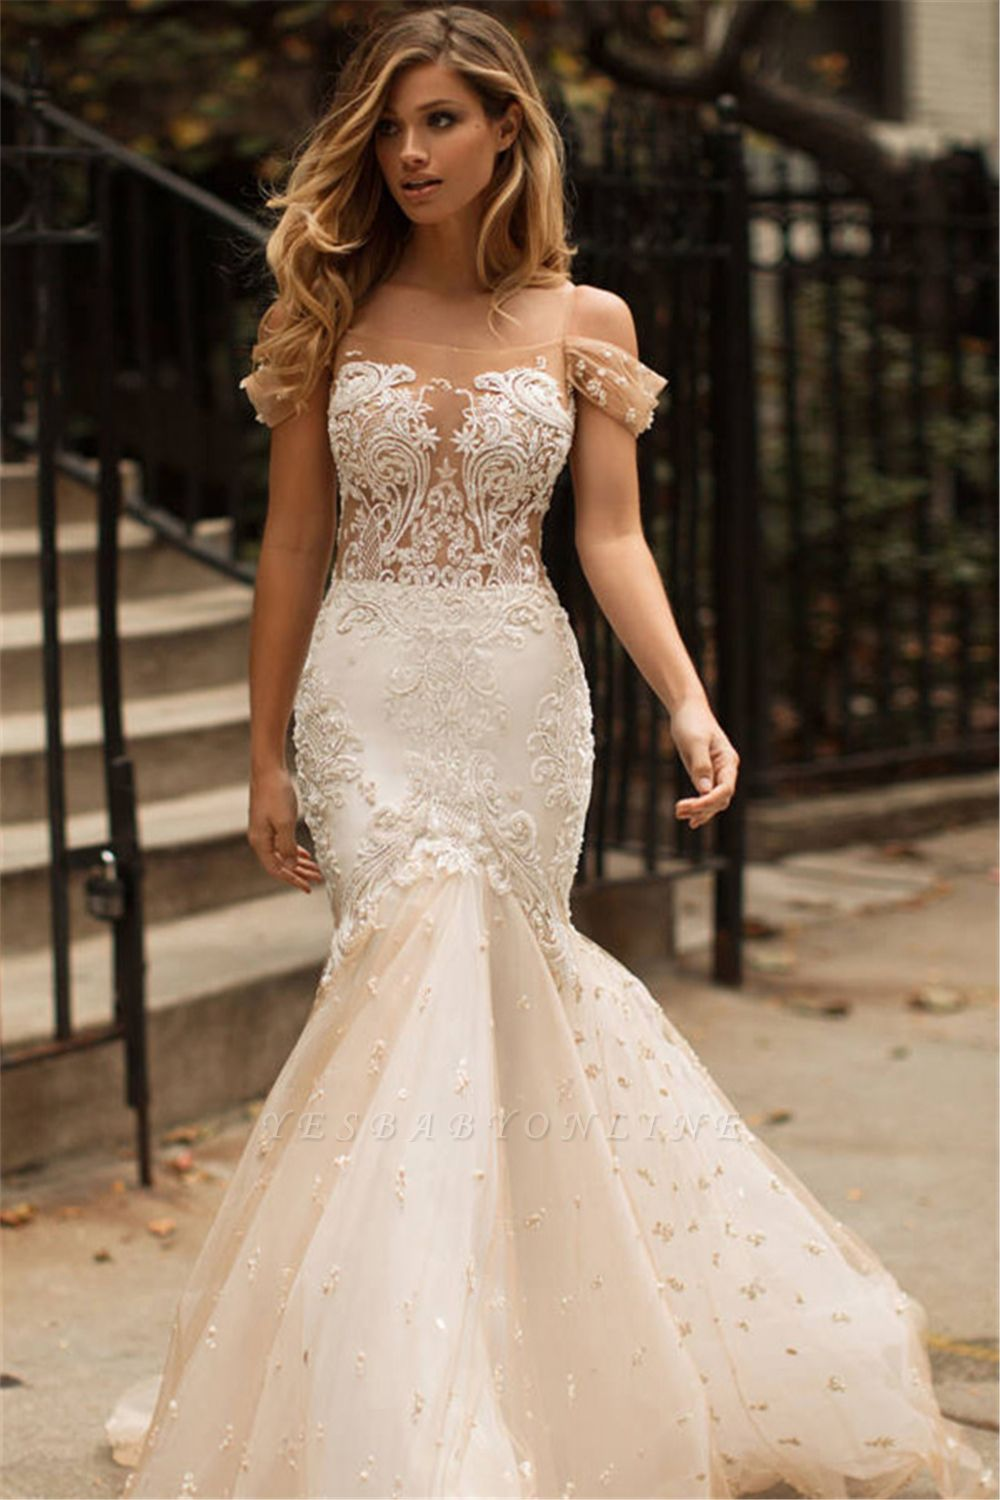 Off-the-shoulder Lace Appliques Wedding Dresses | Mermaid Tulle Long Bridal Gowns